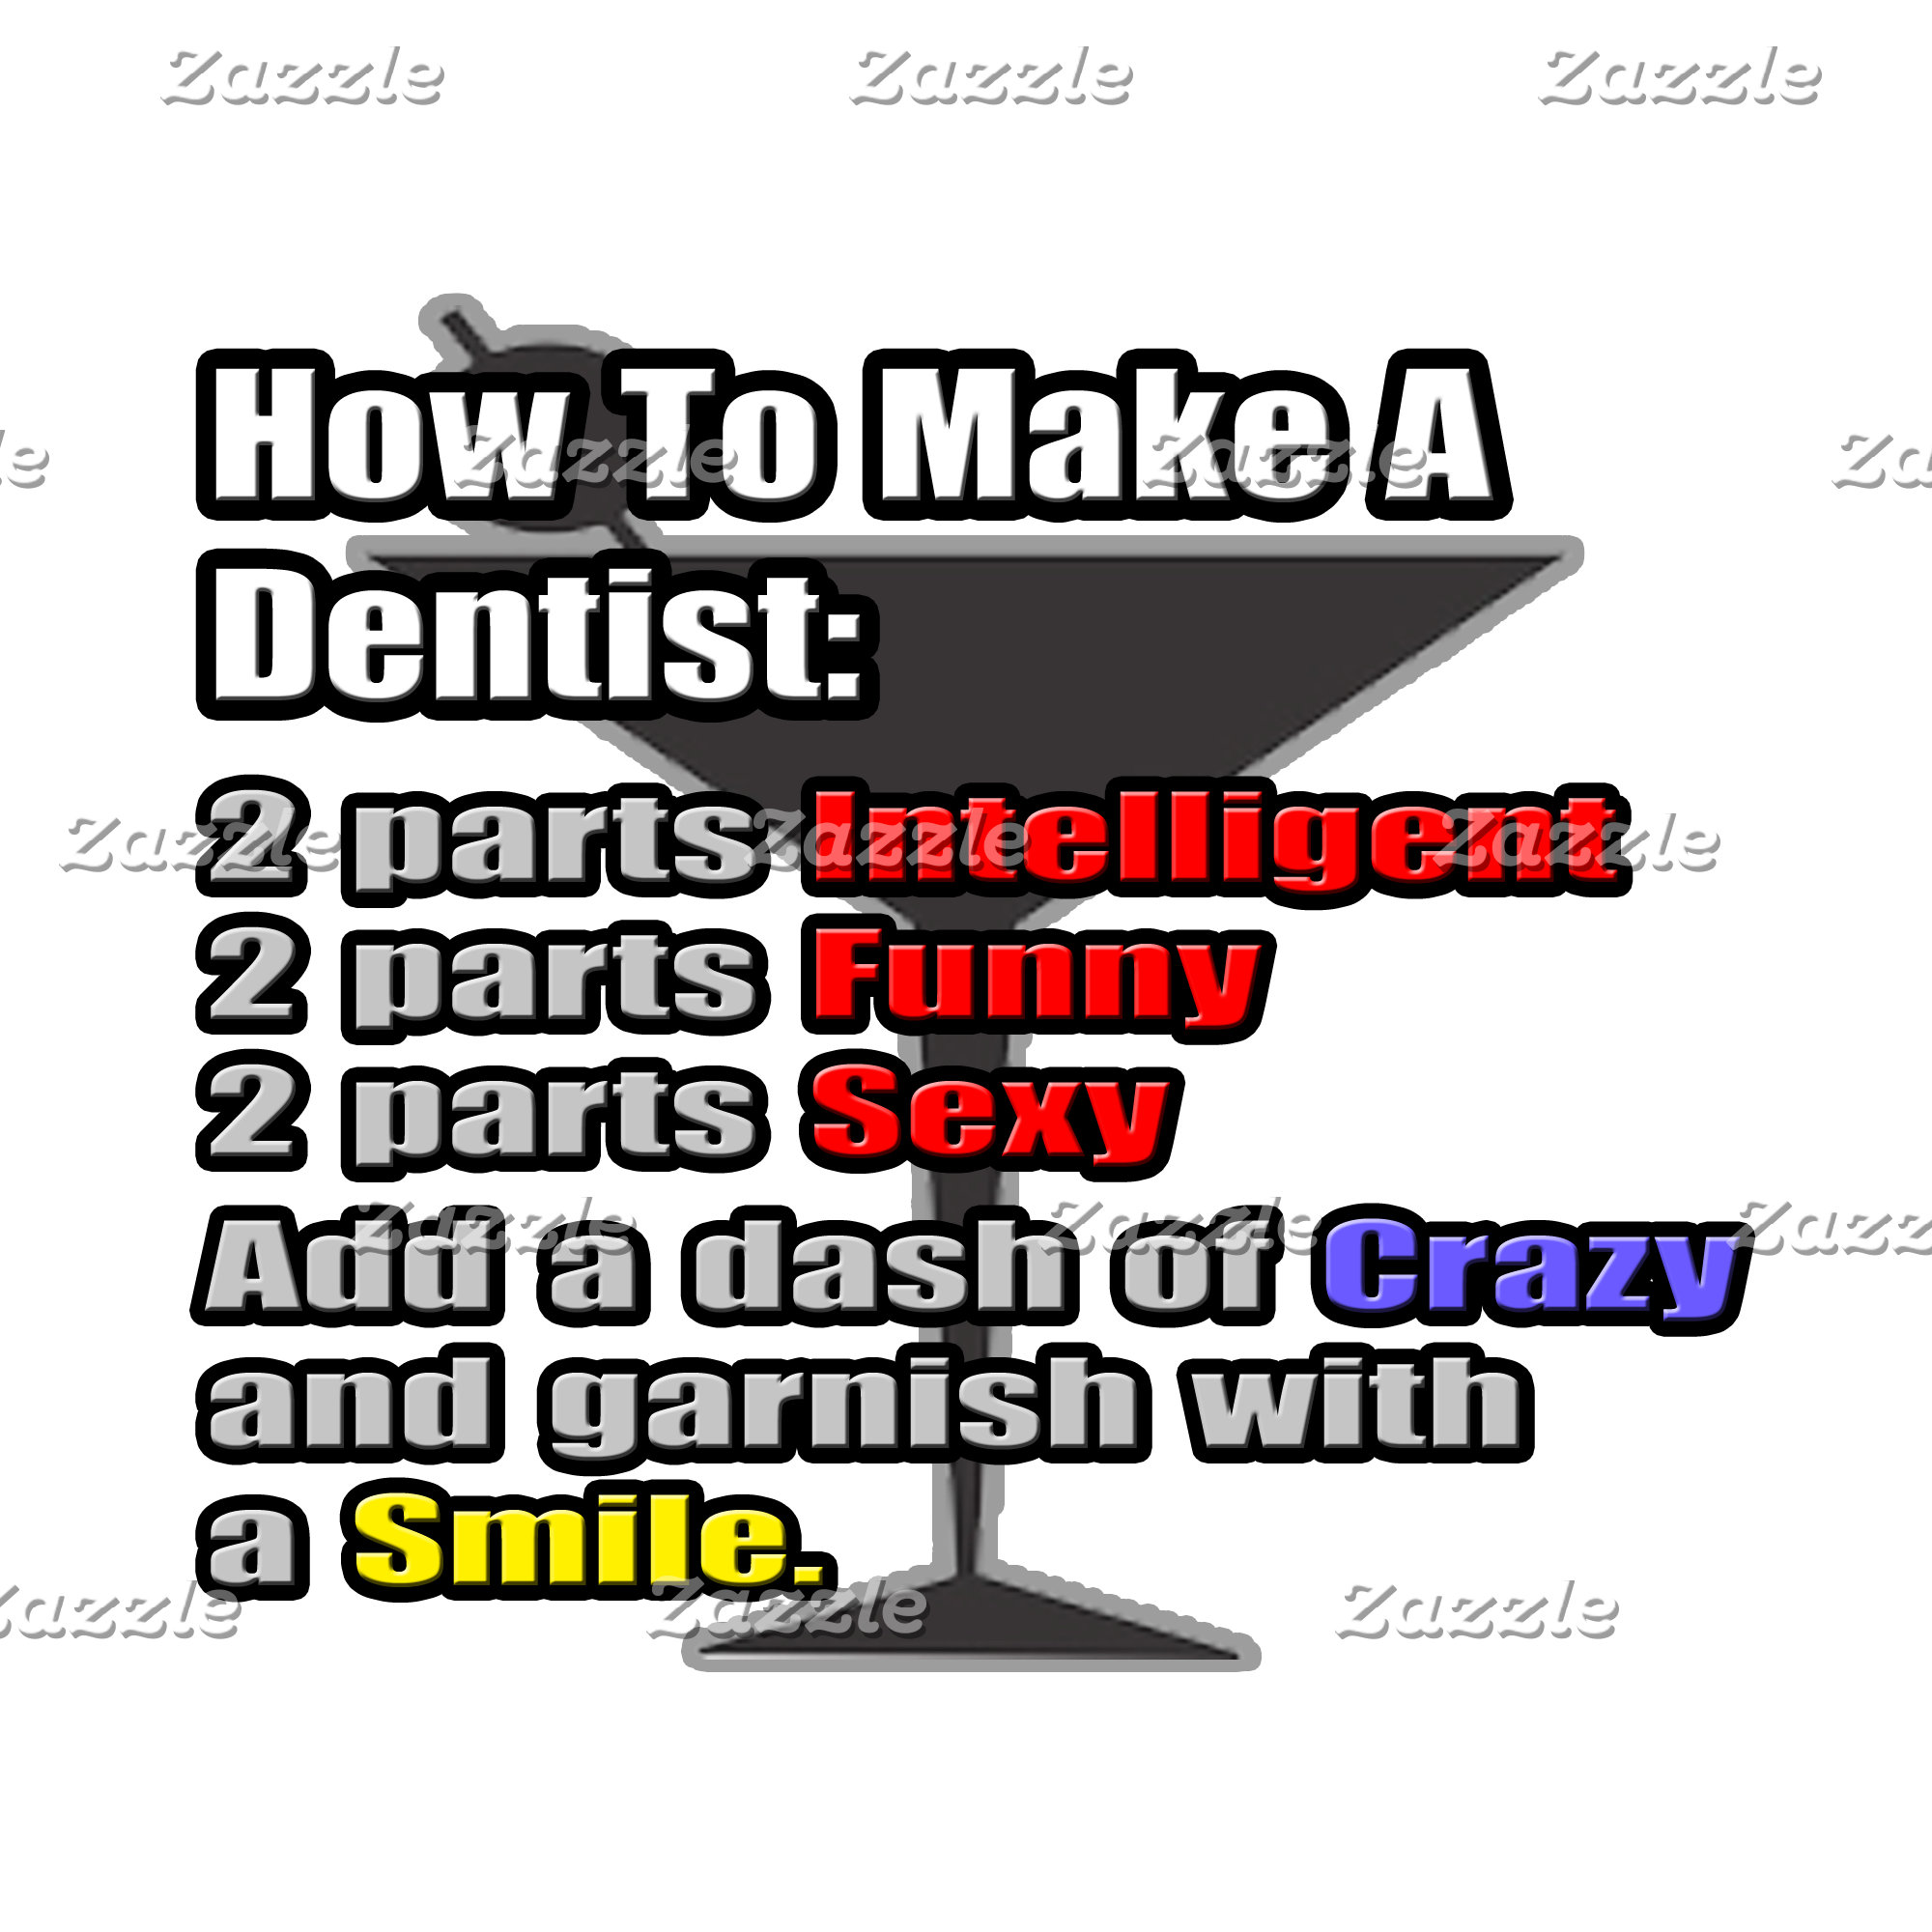 How To Make a Dentist